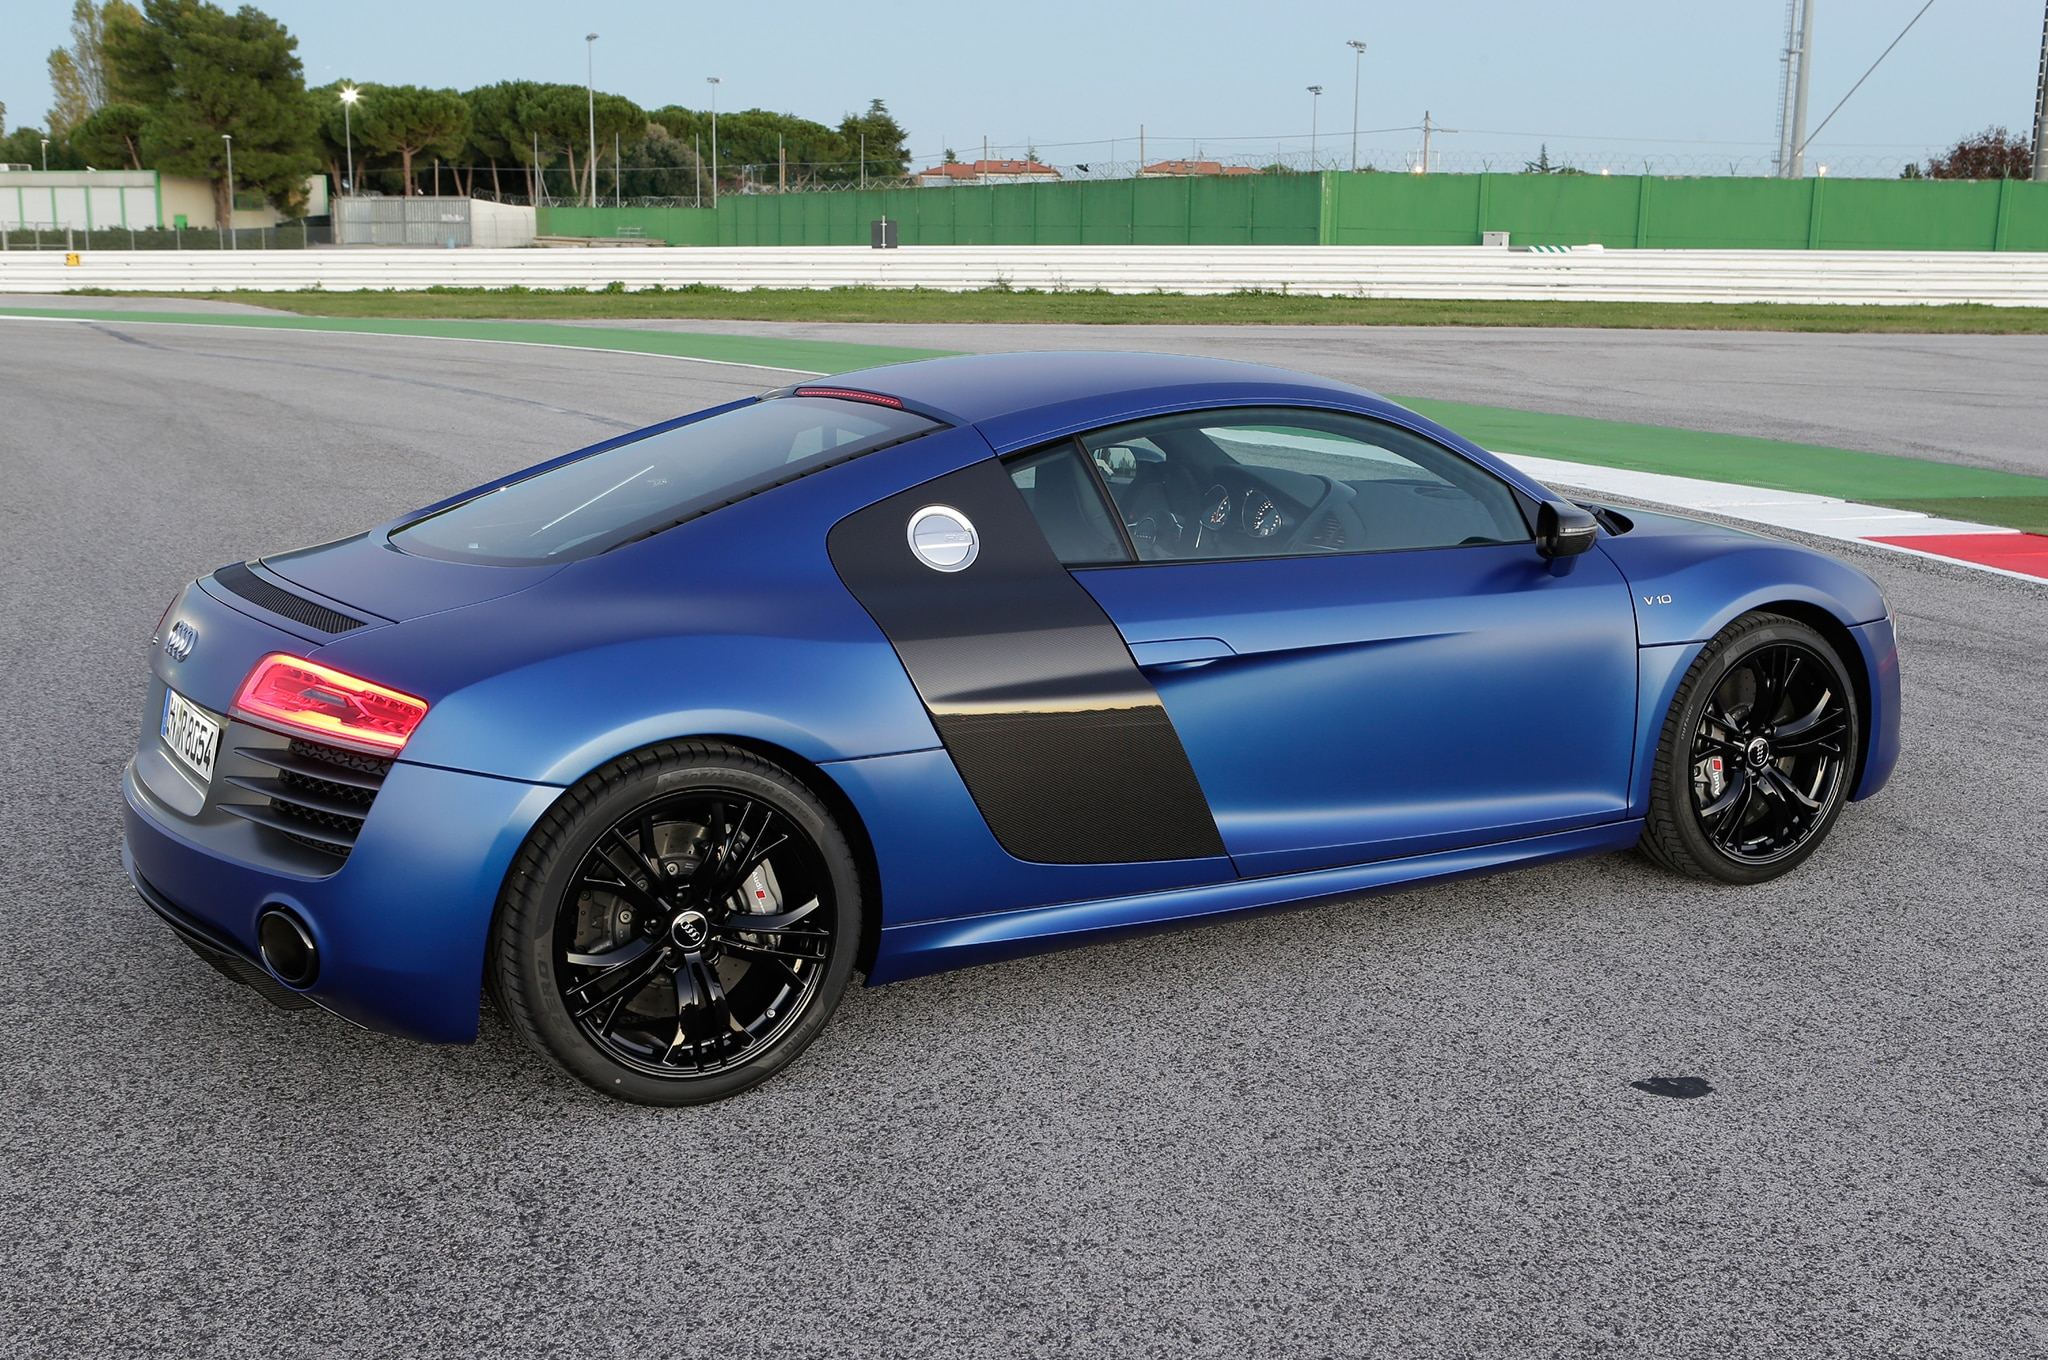 2014 Audi R8 V10 Plus Three Quarters Side View1